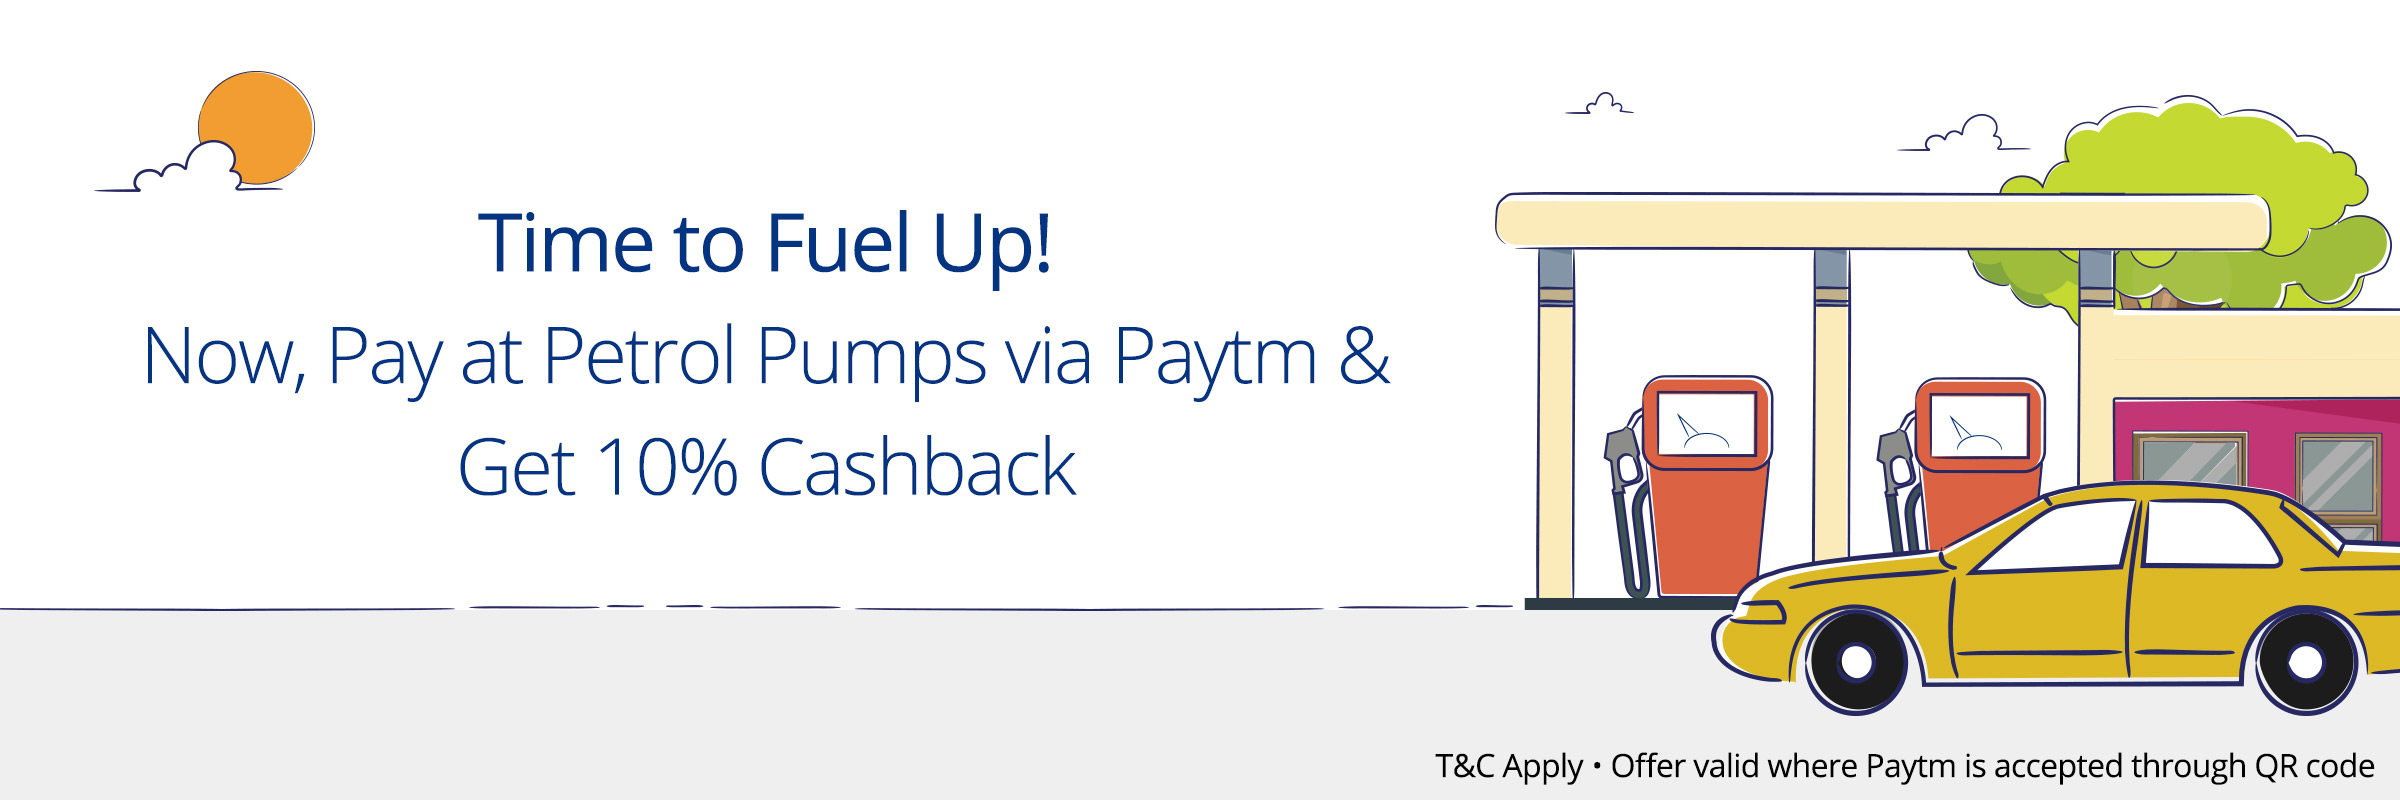 Paytm - Get 10% Cashback on Transaction of Rs 100 or more at Petrol Pumps